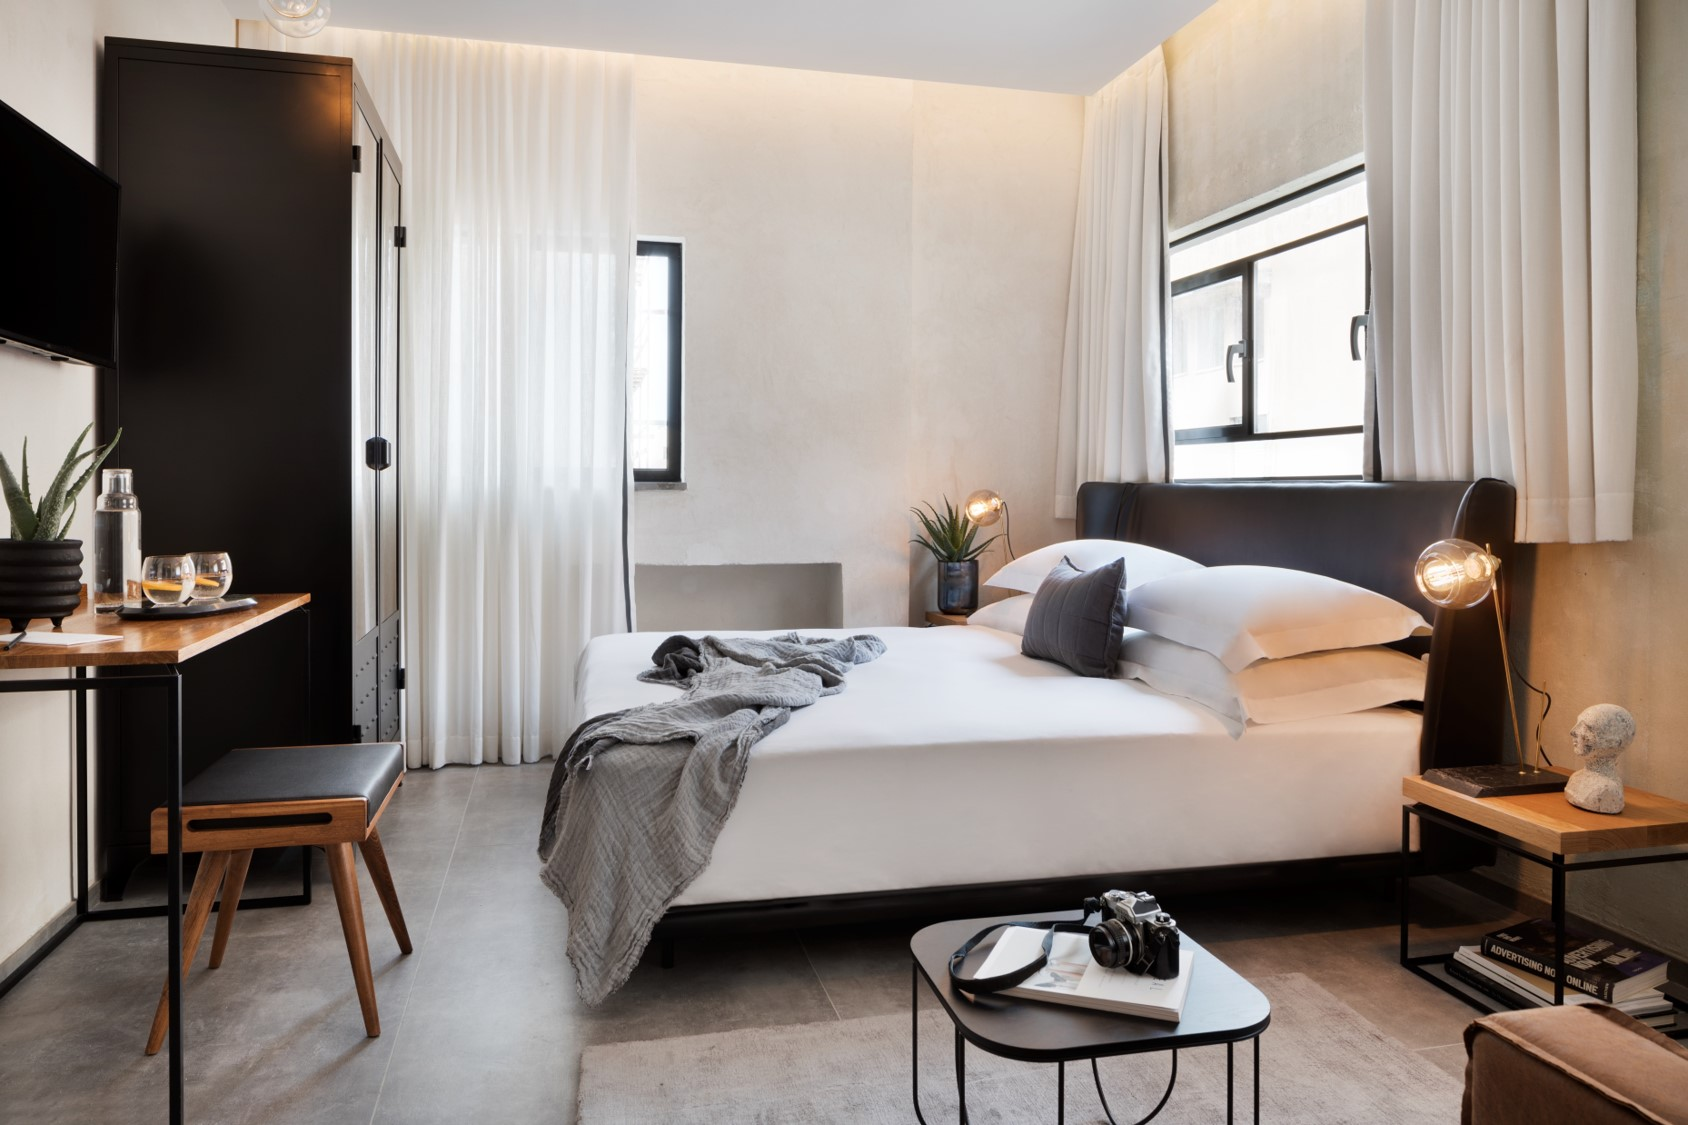 Deluxe Room - Photo by Assaf Pinchuk